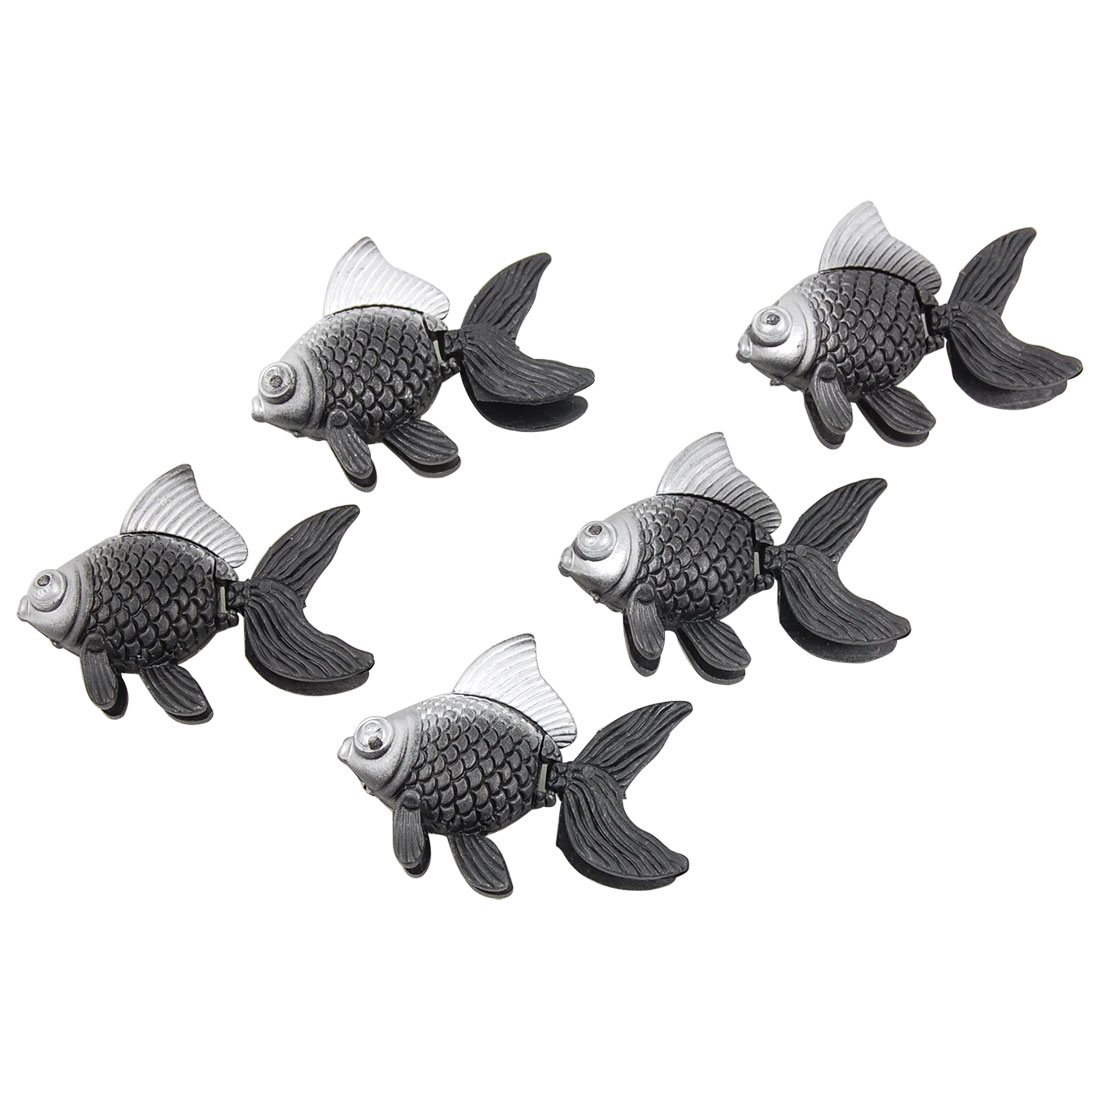 5pcs Mini Gray Silver Tone Plastic Floating Fish Aquarium Decor